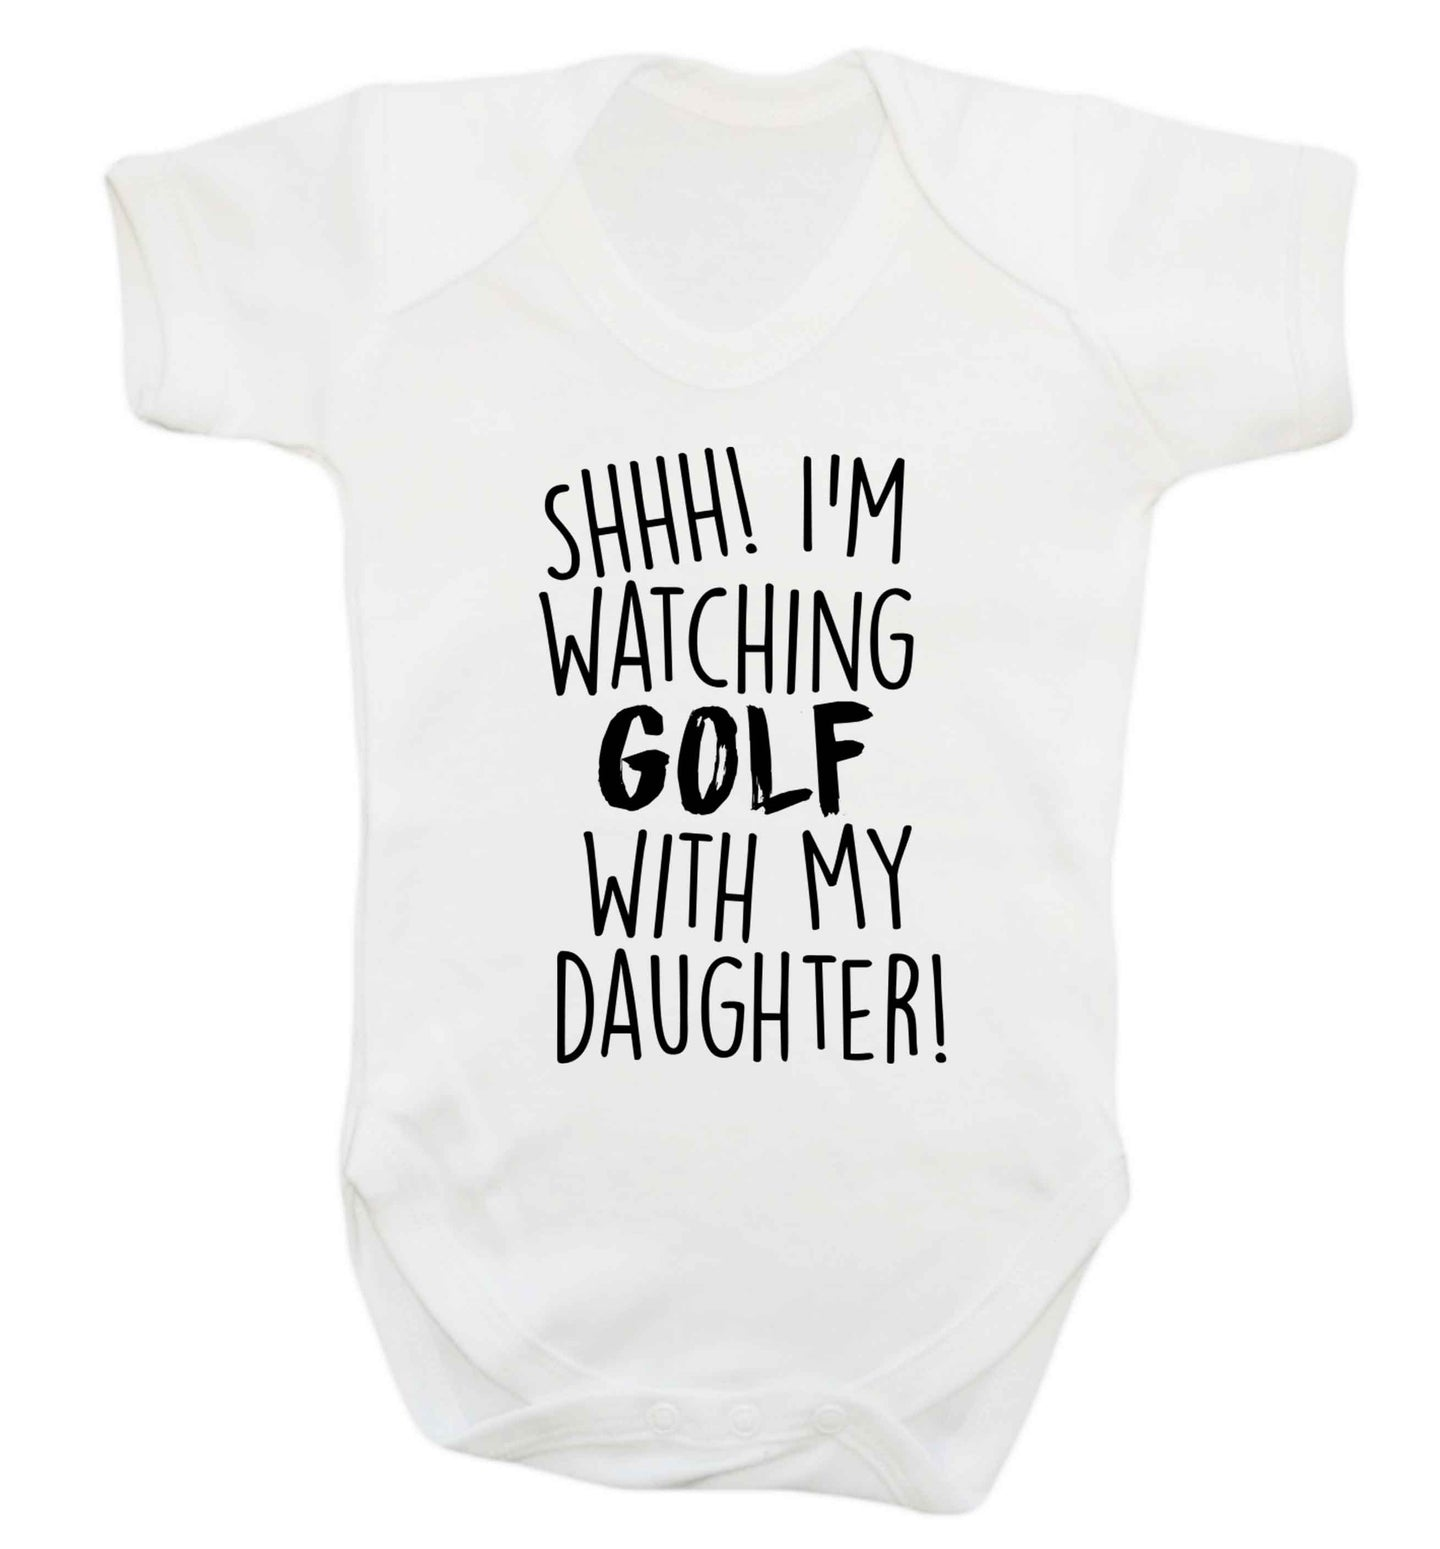 Shh I'm watching golf with my daughter Baby Vest white 18-24 months